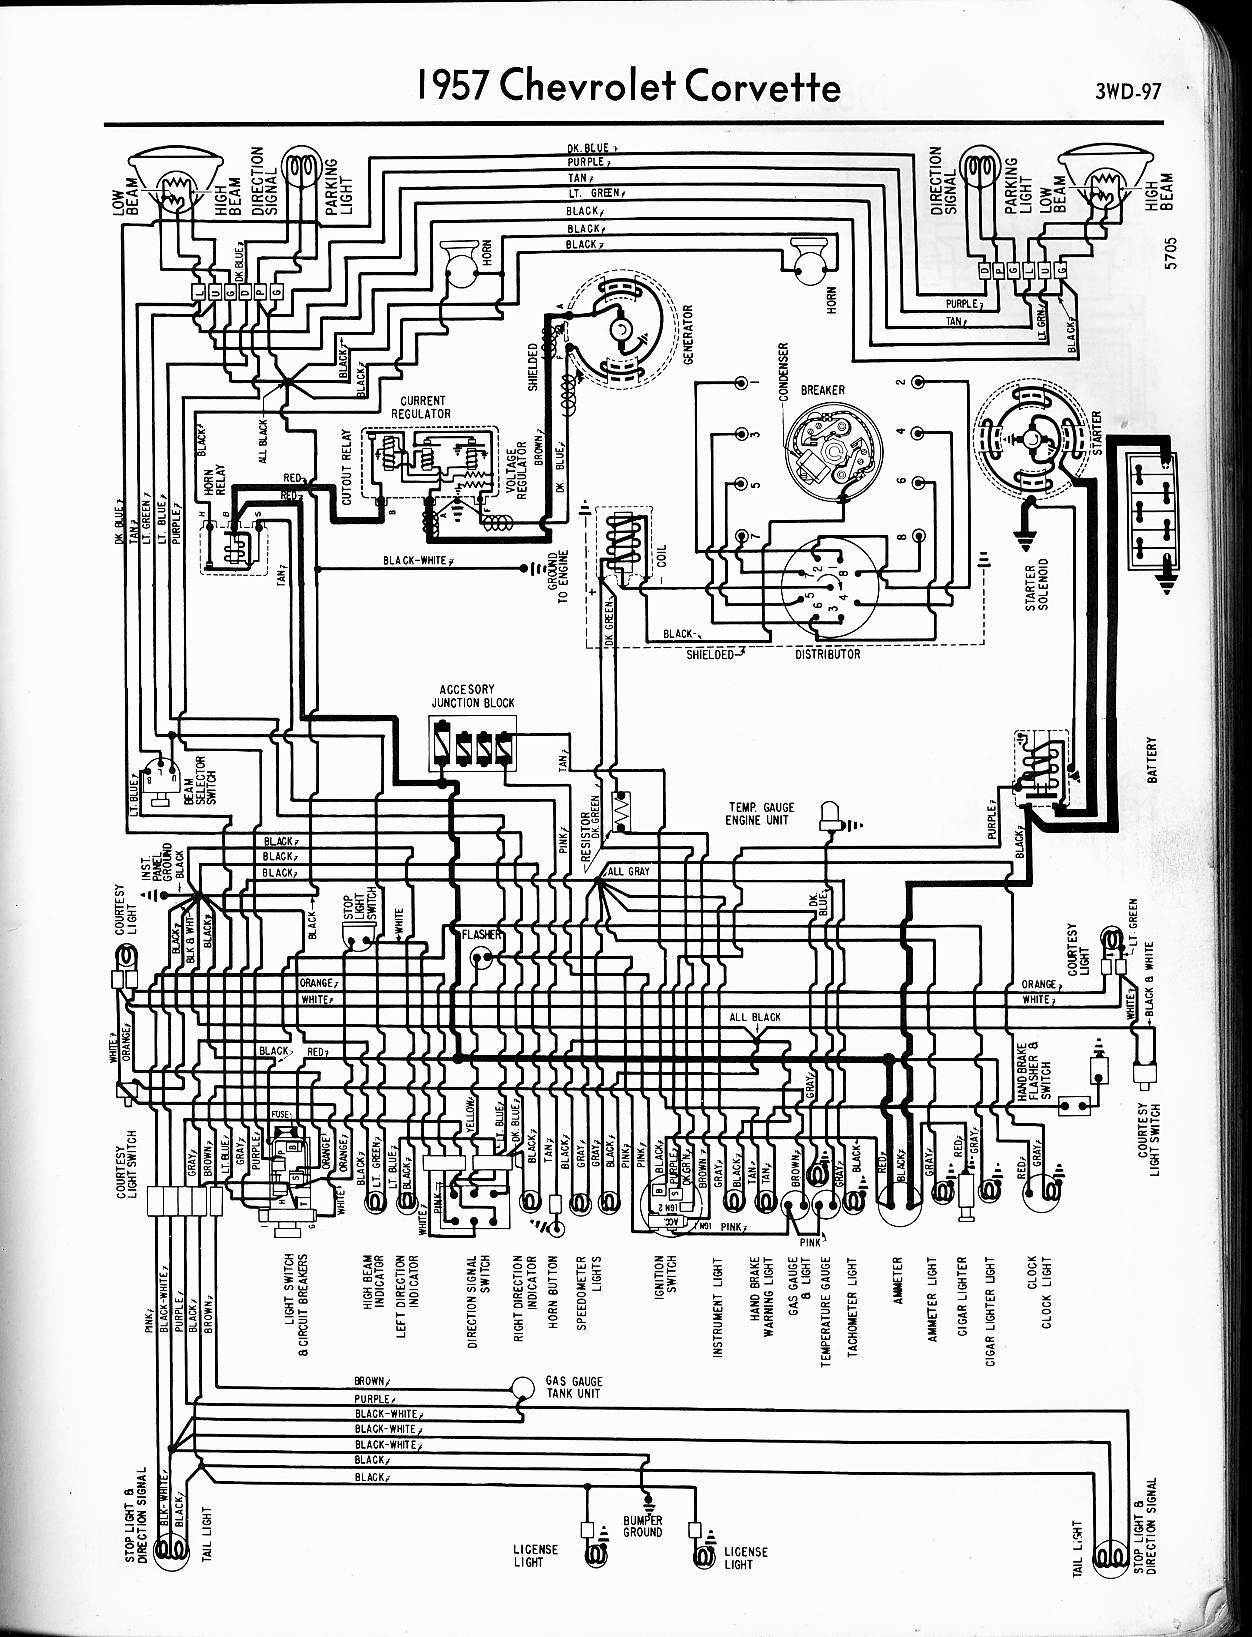 Chevy wiring schematics on 57 65 chevy wiring diagrams chevy wiring diagram for trailer chevy express wiring schematics